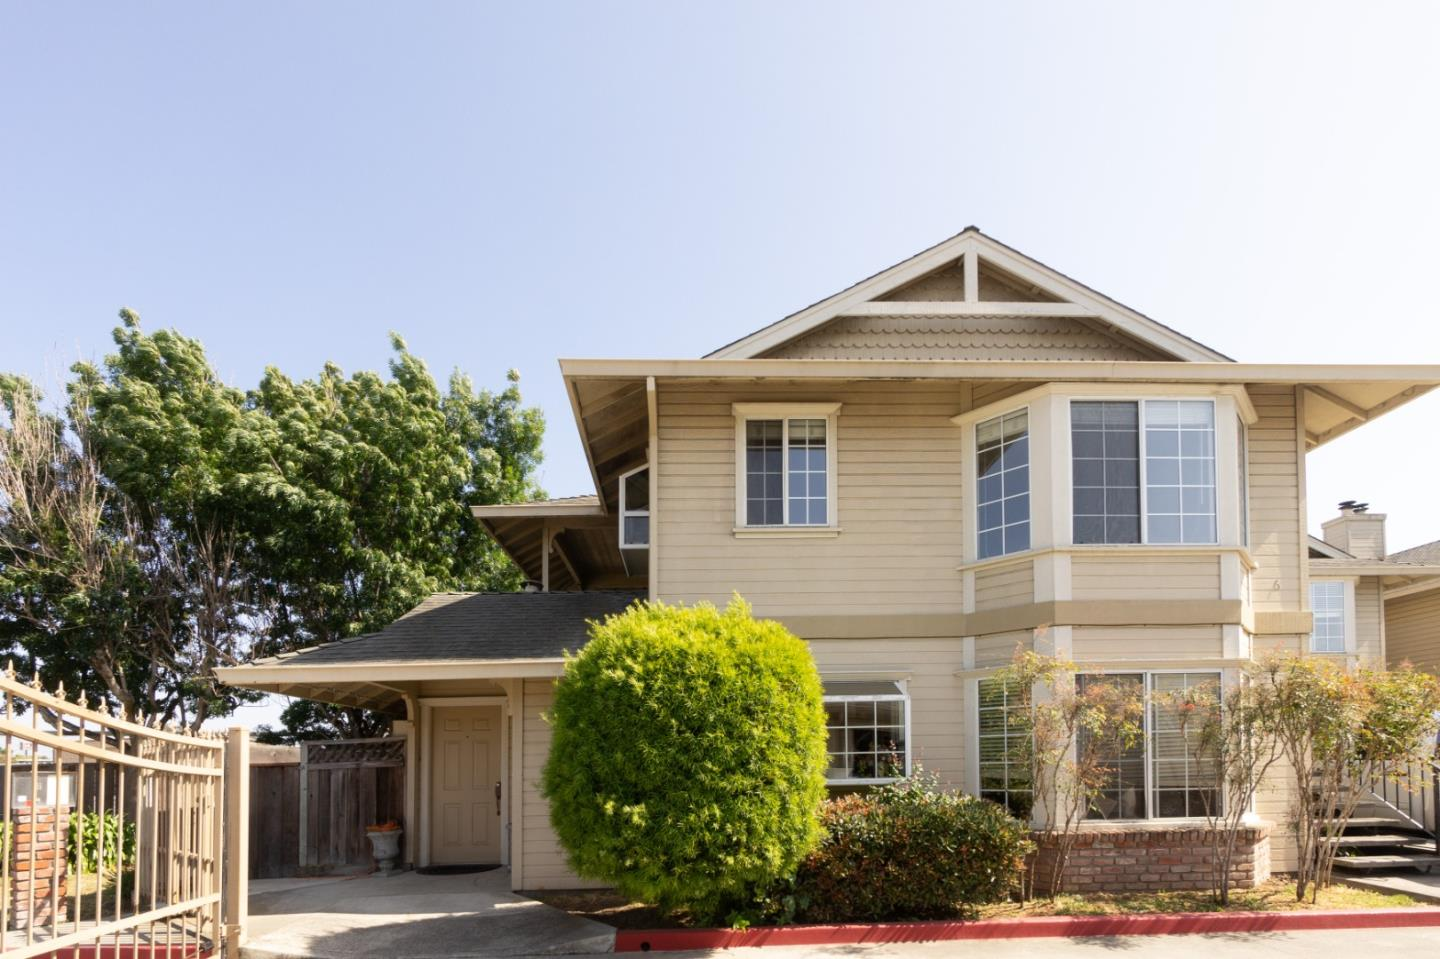 Detail Gallery Image 1 of 15 For 520 Cayuga #6, Salinas, CA 93901 - 2 Beds | 2 Baths